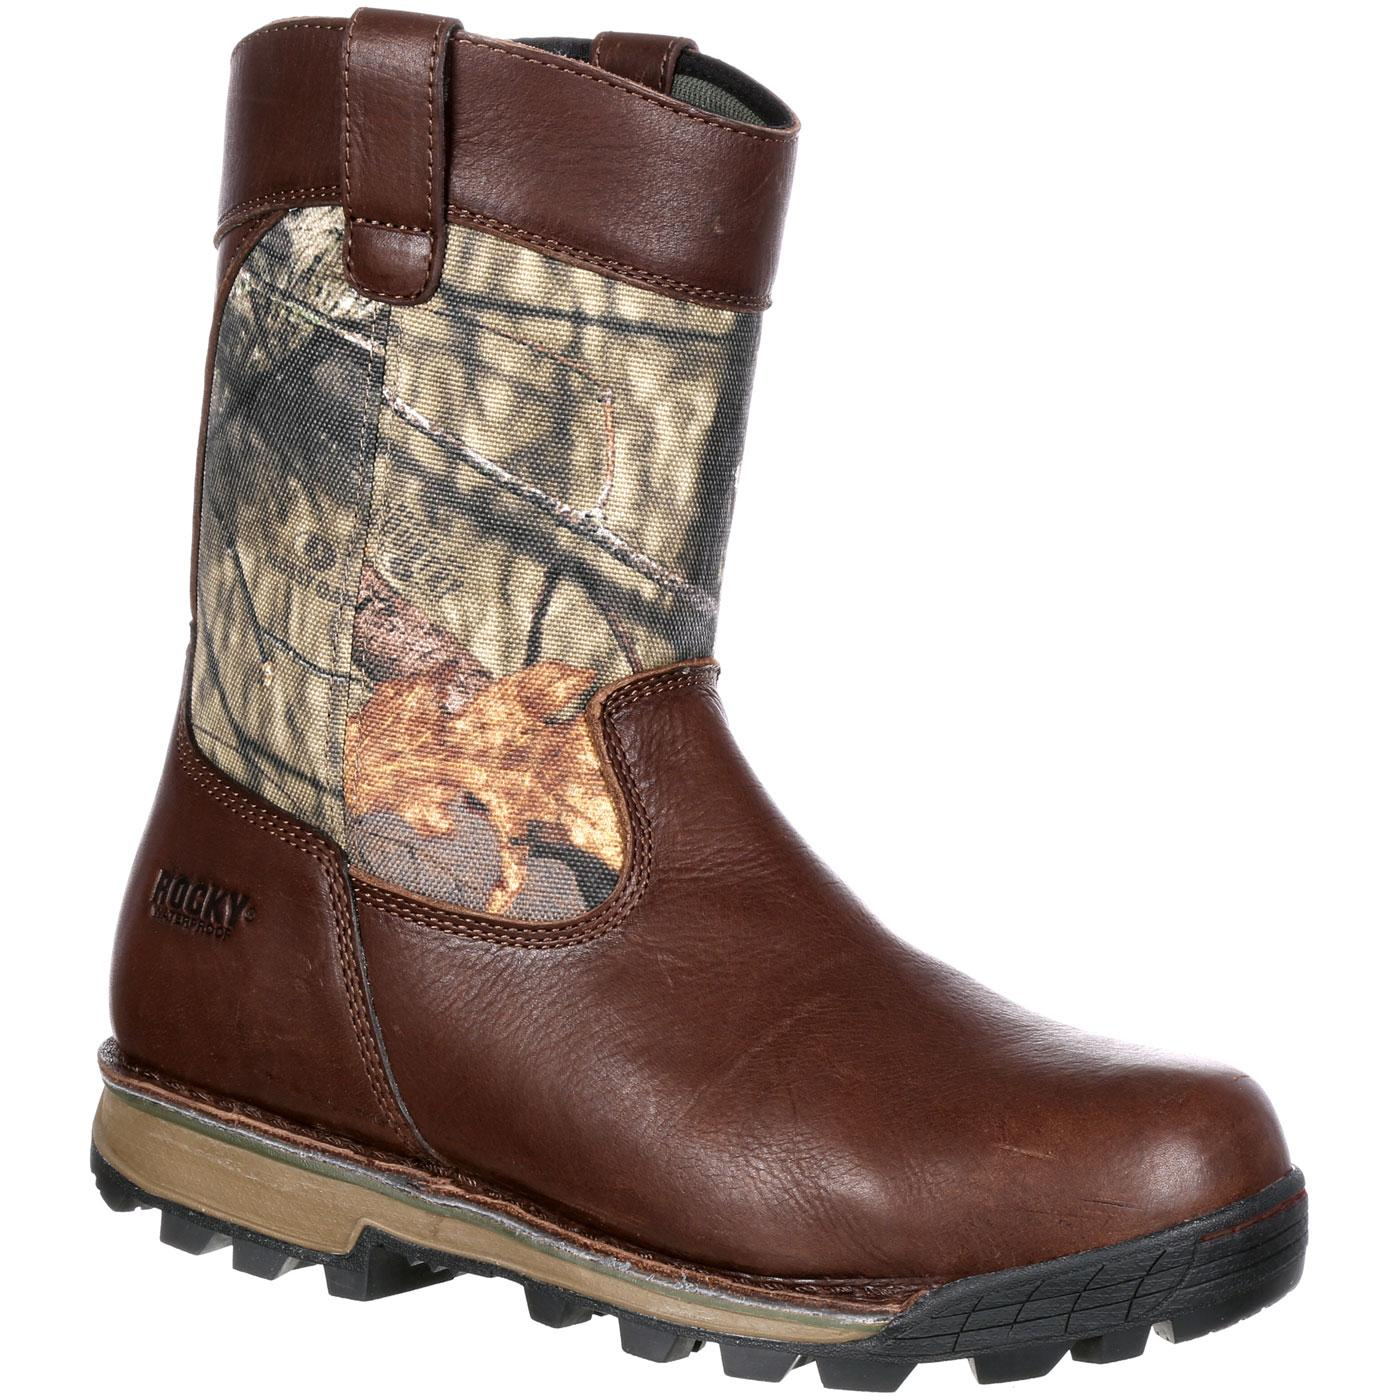 c7044873e62 Rocky Traditions Waterproof 400G Insulated Wellington Boot